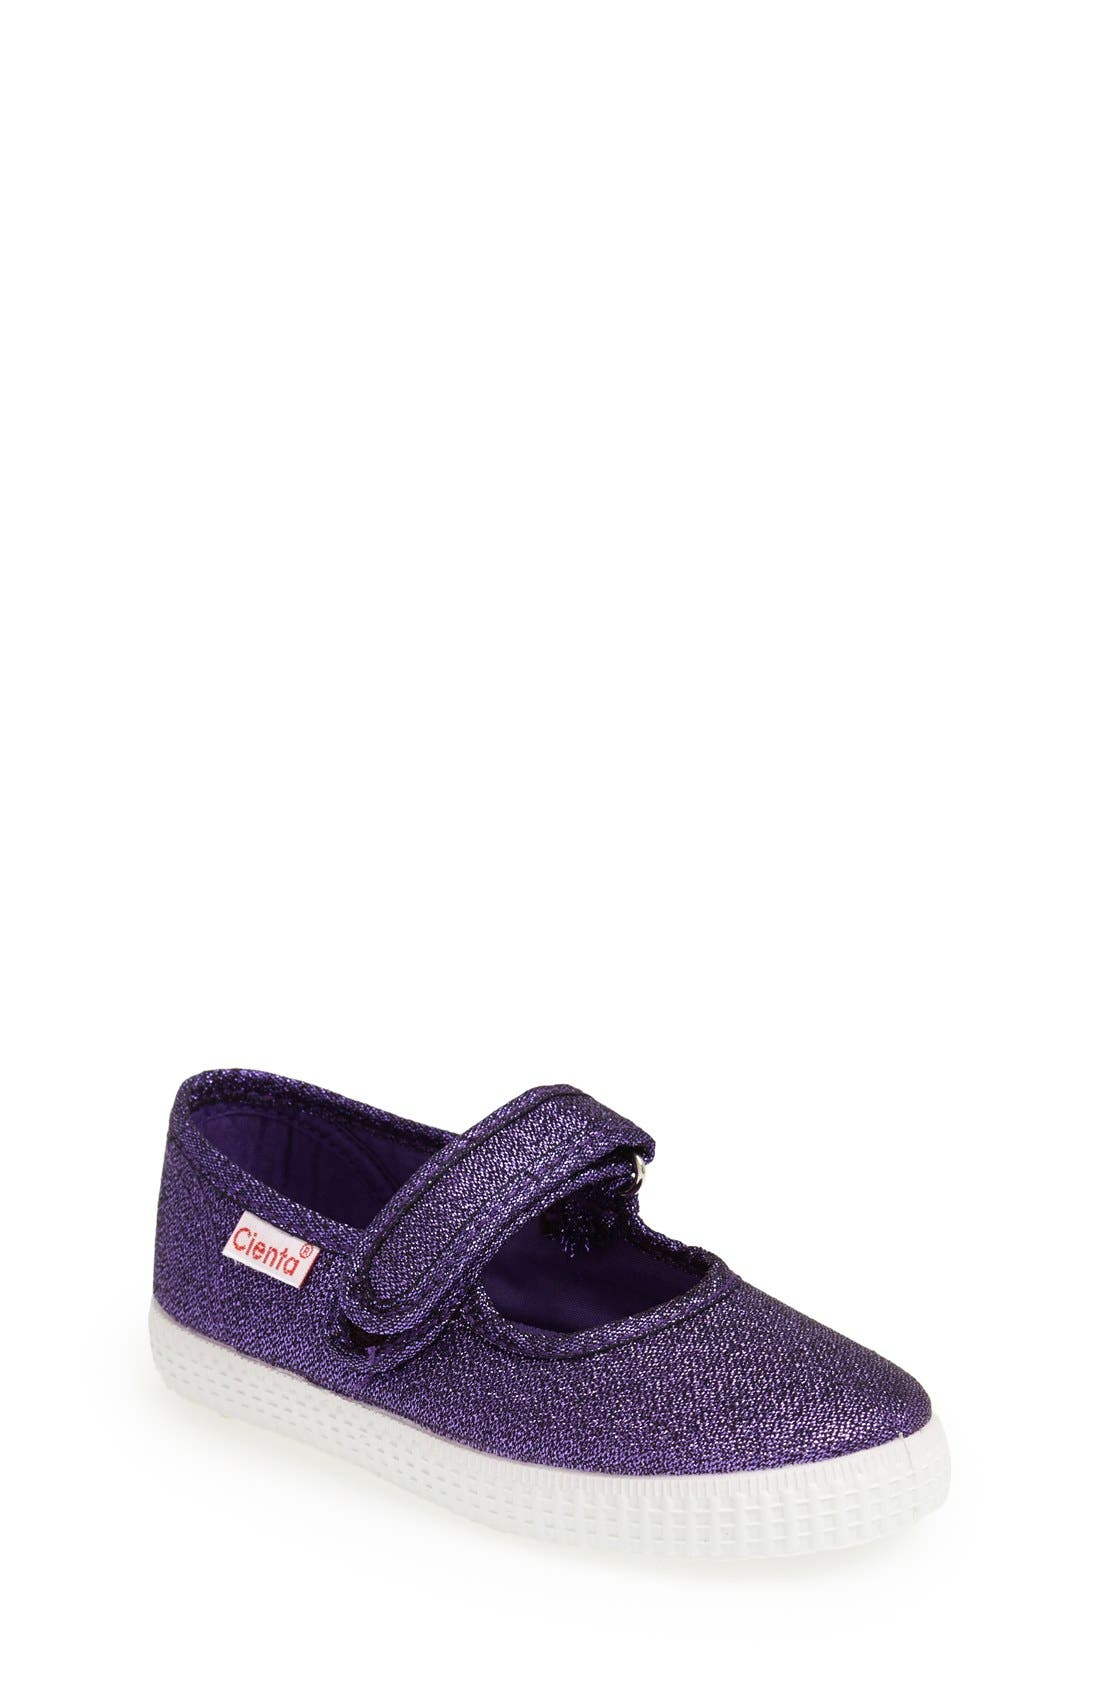 Cienta Glitter Canvas Mary Jane (Walker, Toddler & Little Kid)